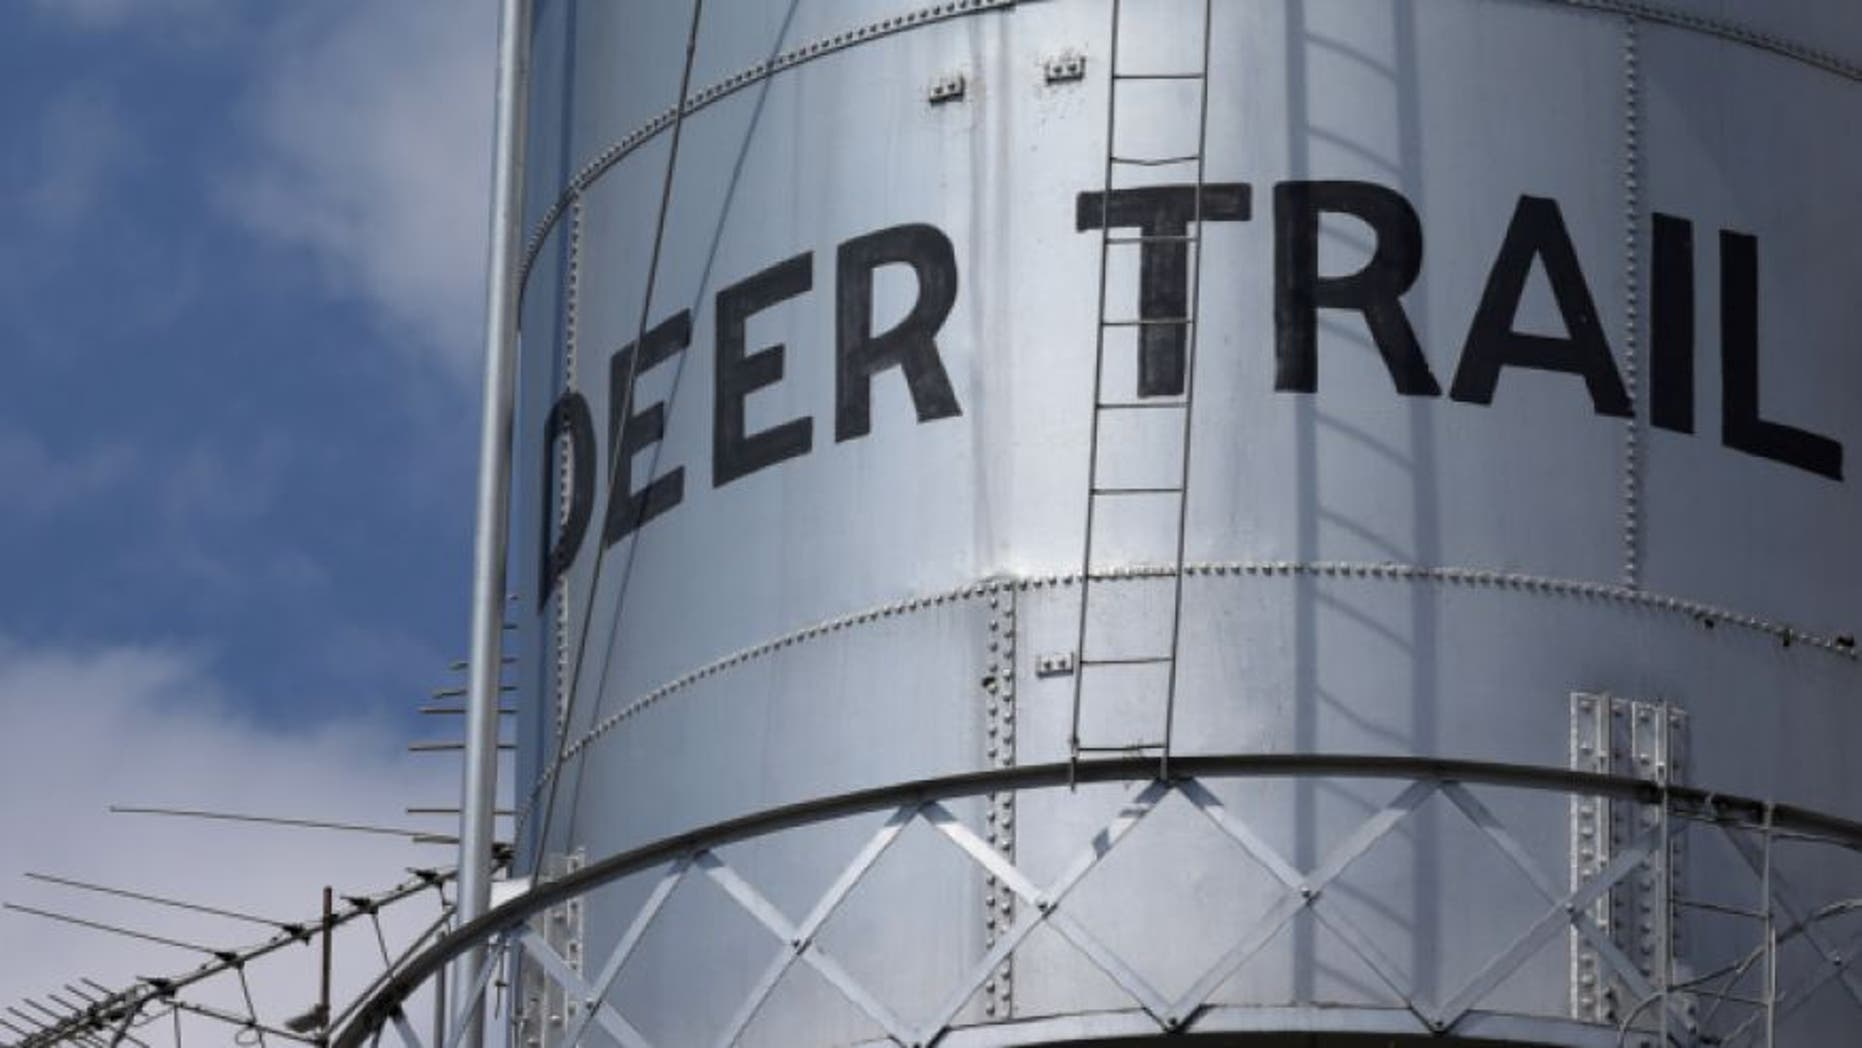 Aug. 22, 2013: This photo shows the local water tower in Deer Trail, Colo., population 500.